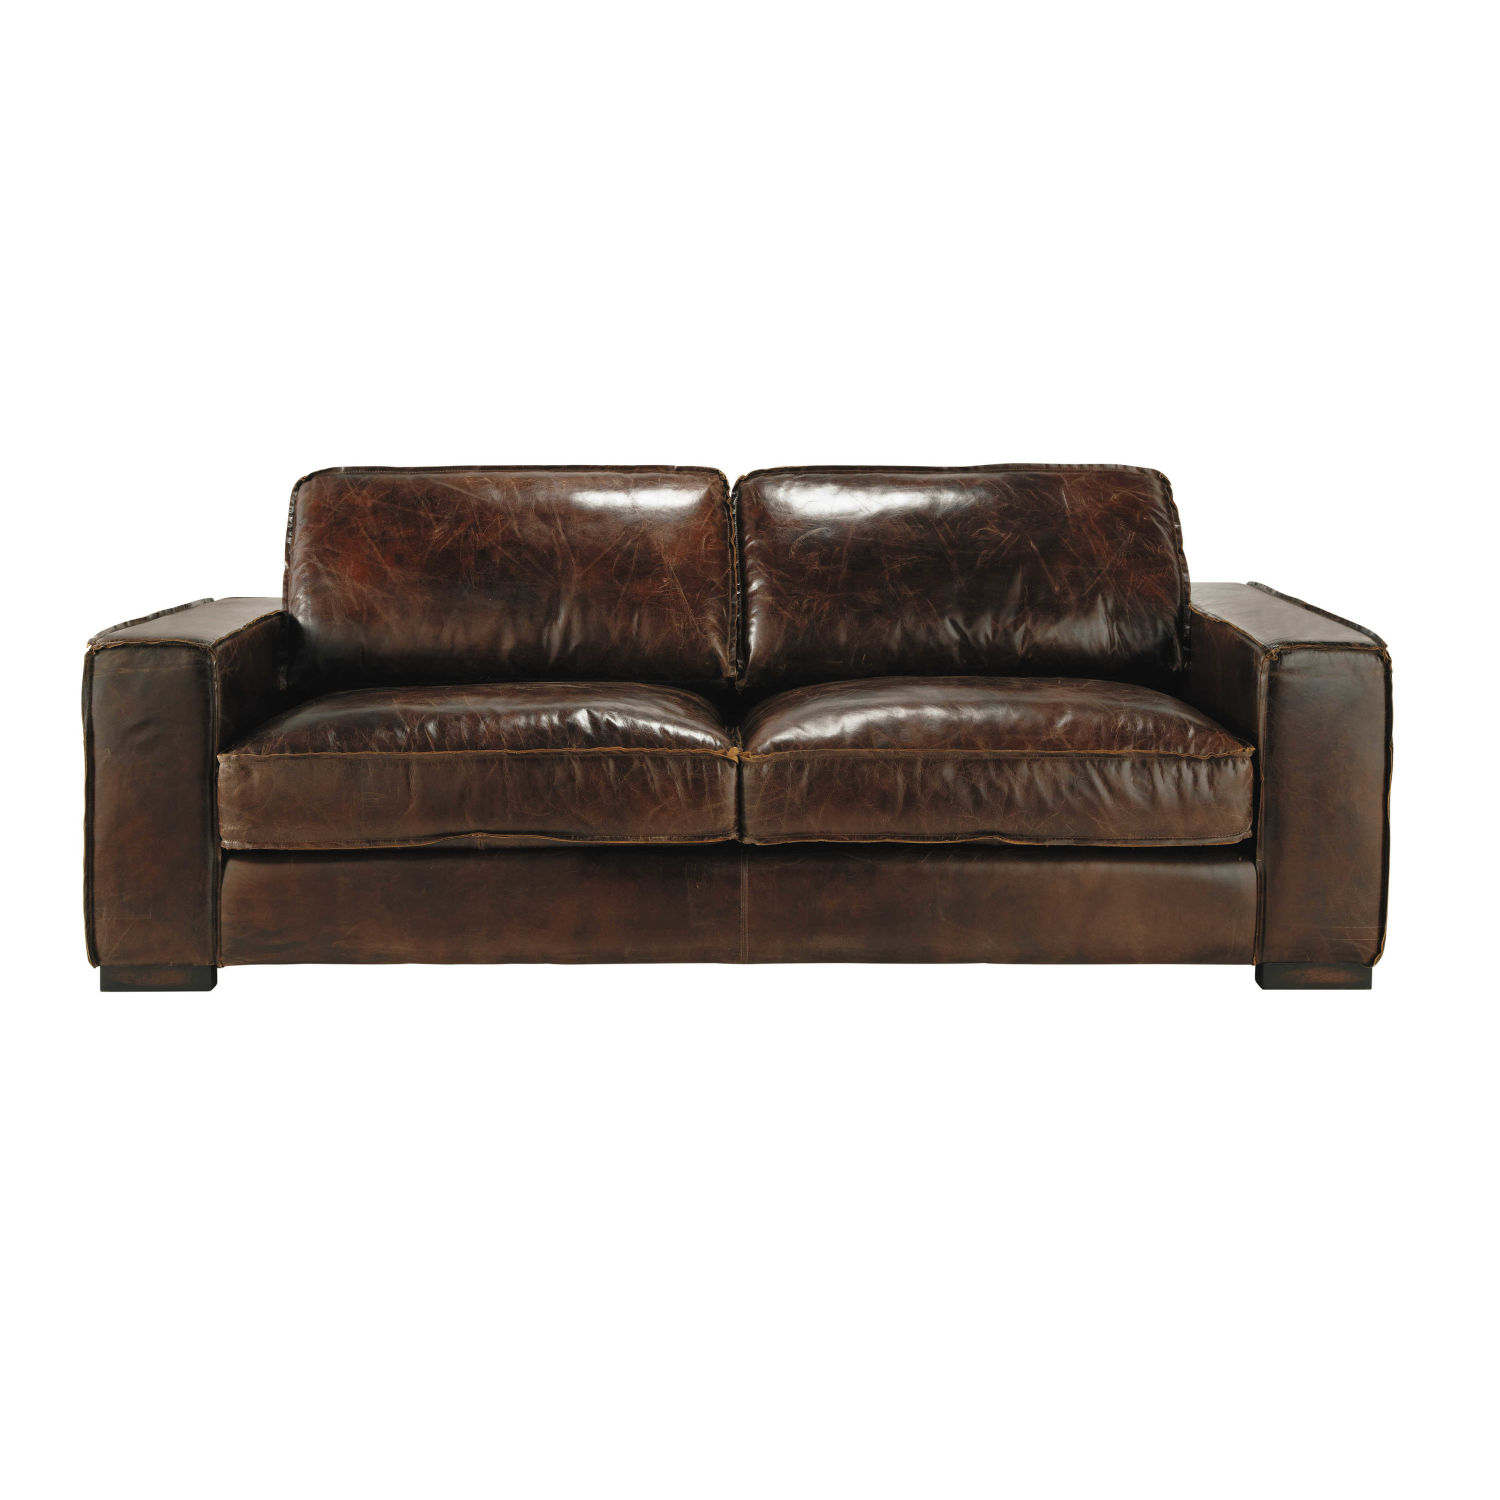 Canape Vintage 3 Places En Cuir Marron Colonel Maisons Du Monde